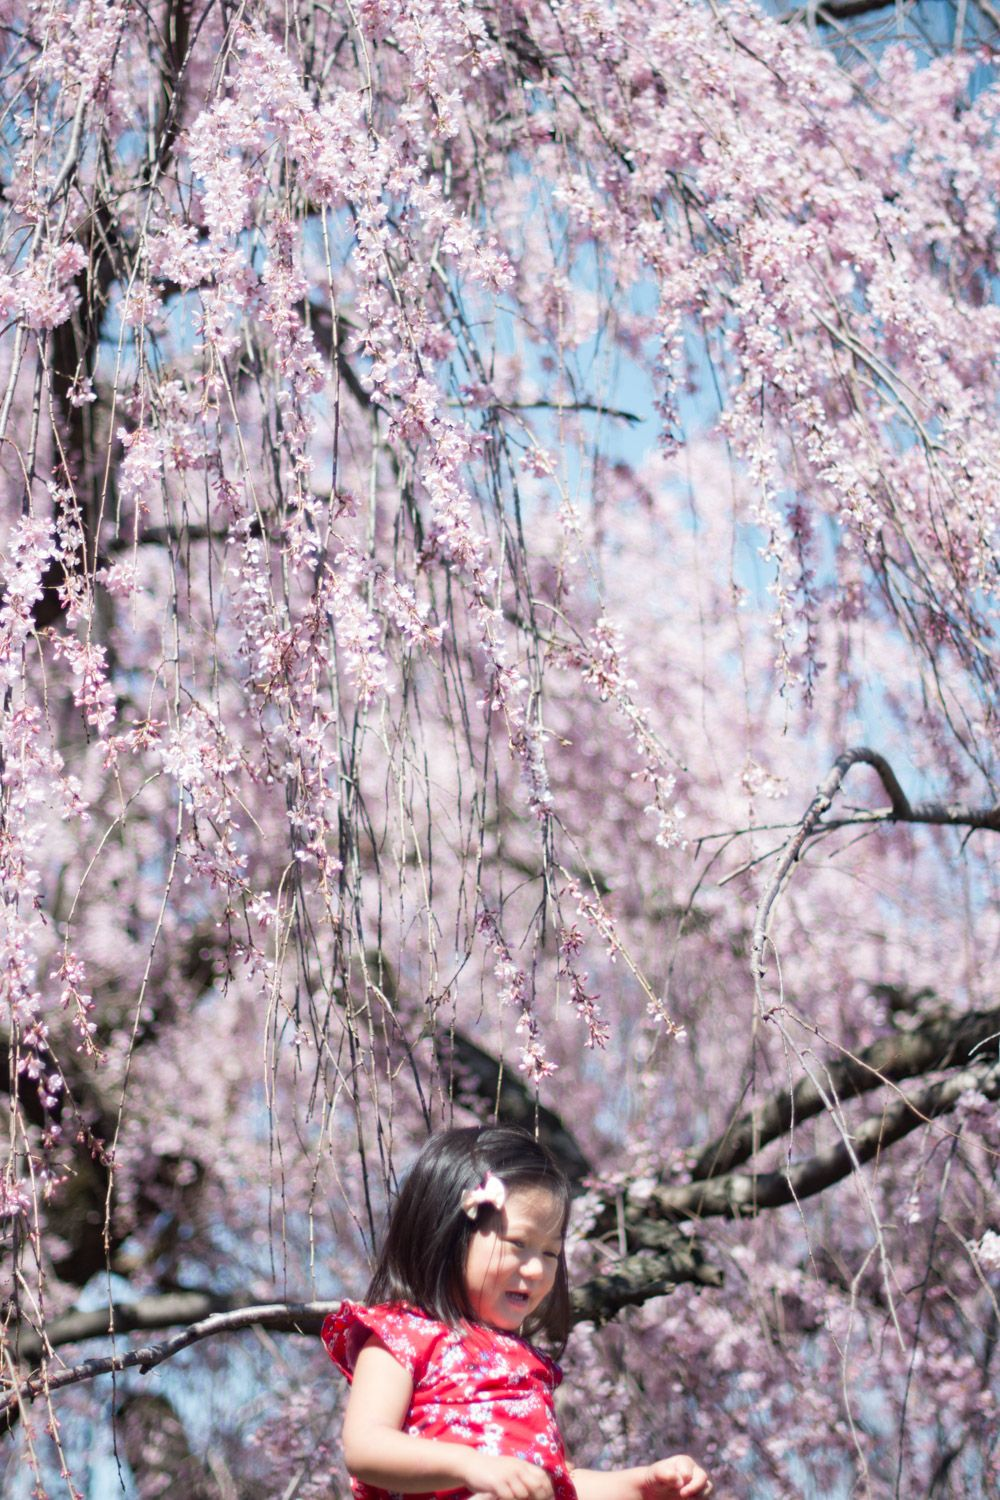 5 Secret Places To See Cherry Blossoms In Dc That Are Tourist Free 2021 Cherry Blossom Dc Cherry Blossom Washington Dc Blossom